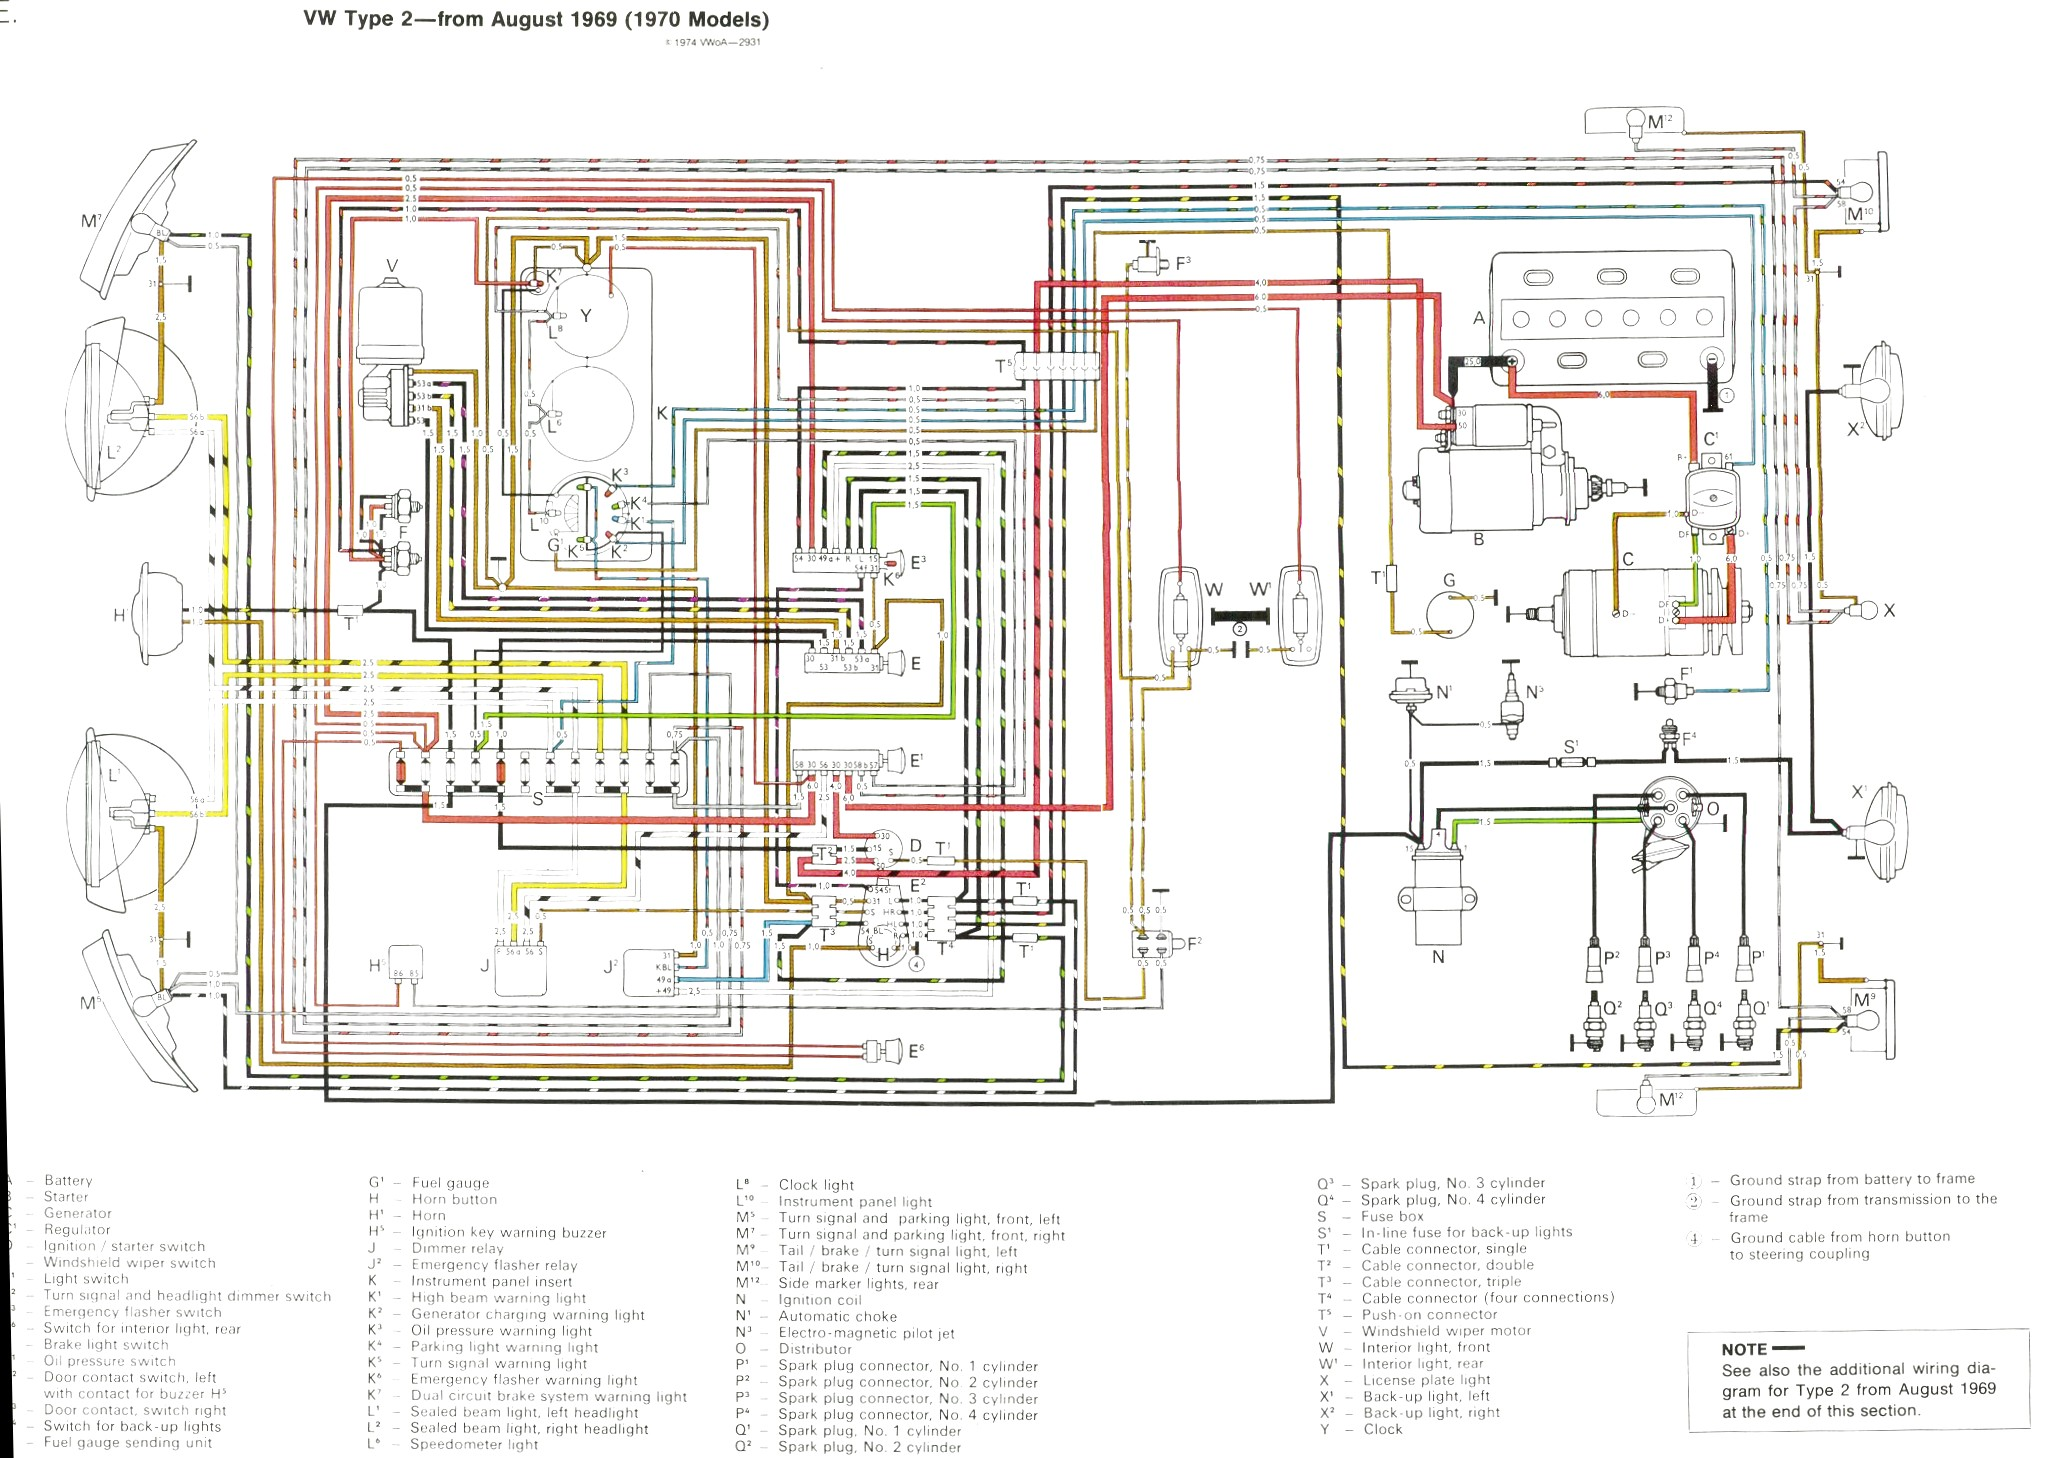 73 vw bug wiring diagram wirdig vw karmann ghia wiring diagram vw printable wiring